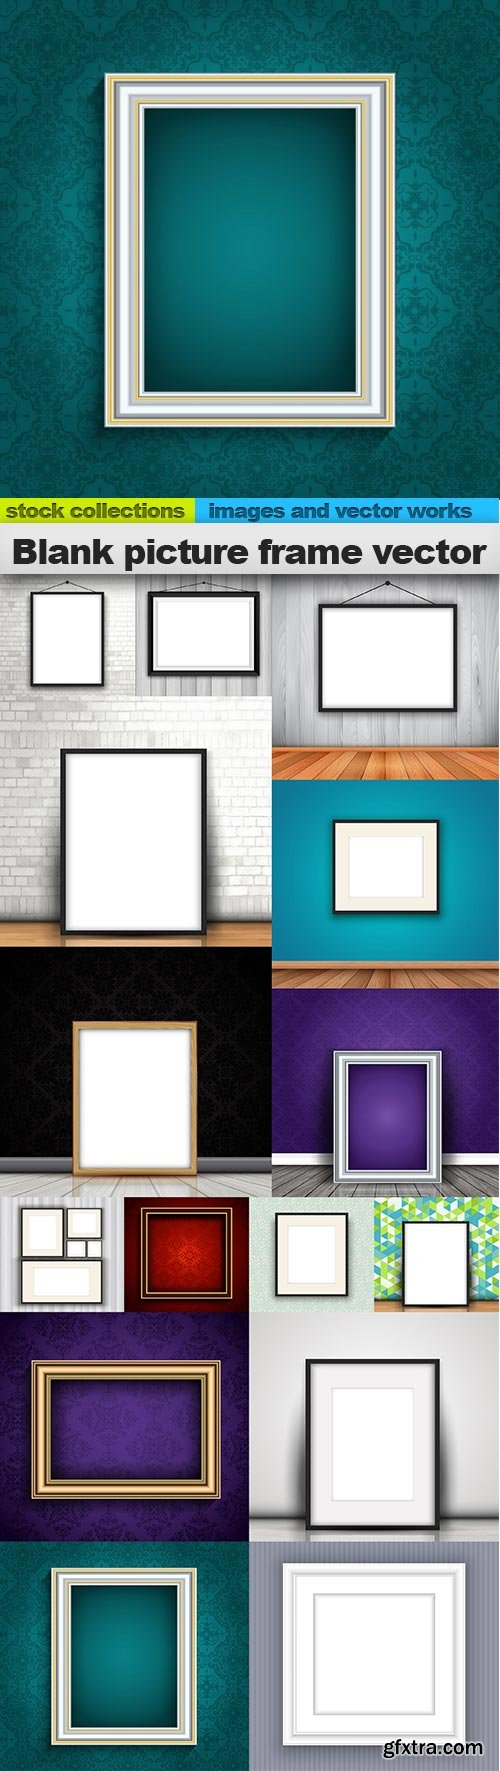 Blank picture frame vector, 15 x EPS